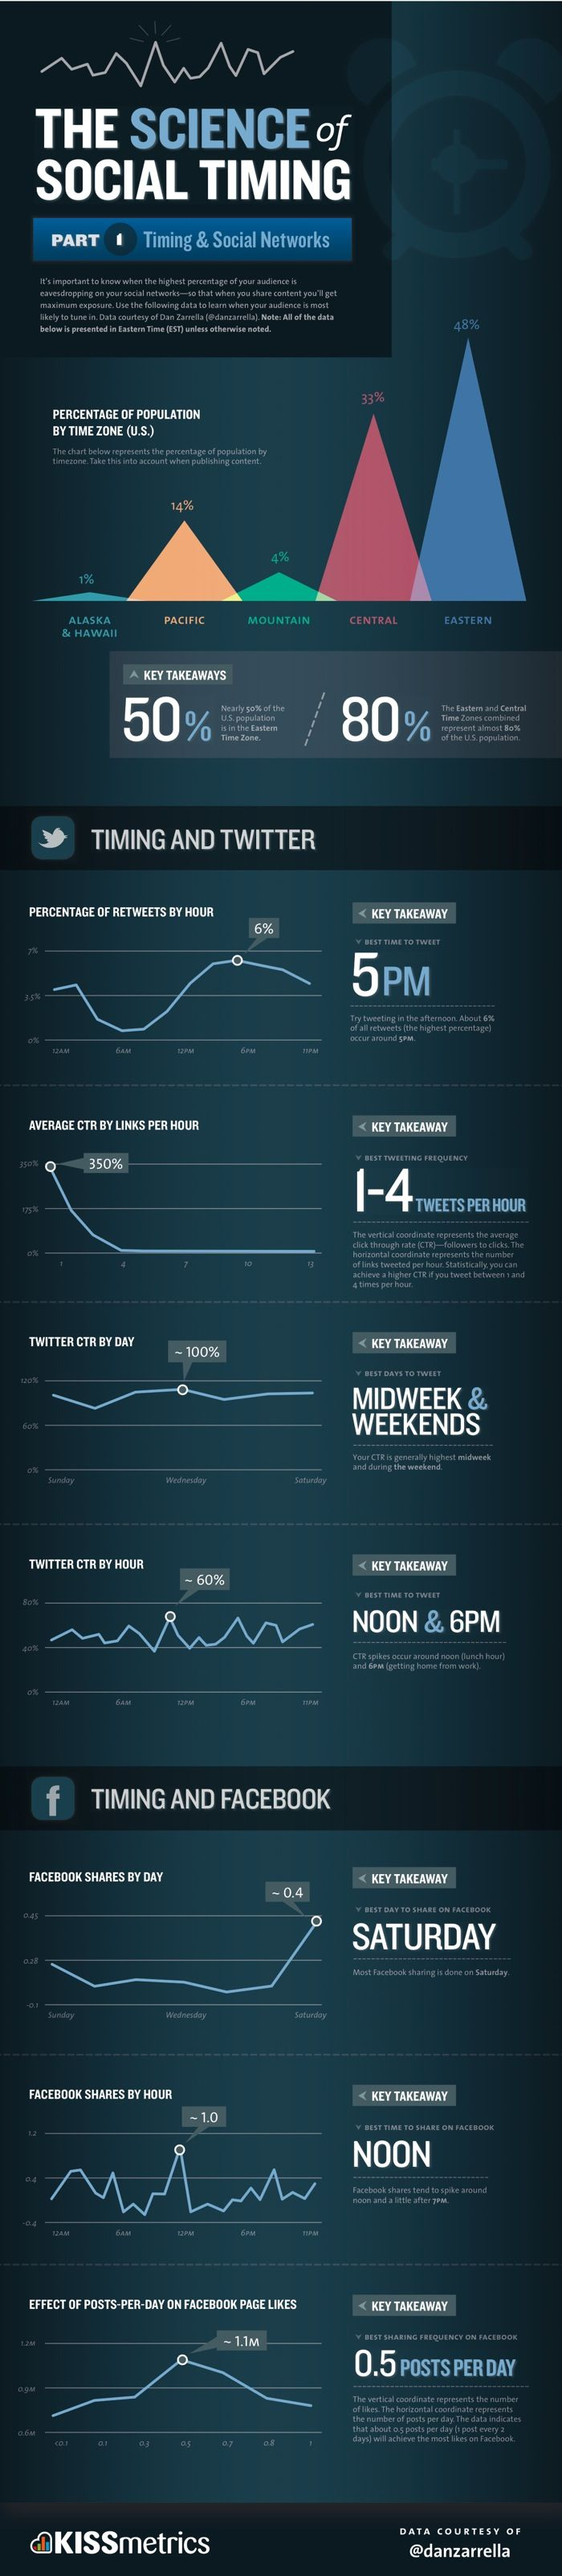 118 best infographics images on pinterest infographic studying science of social timing social networks infographic fandeluxe Images